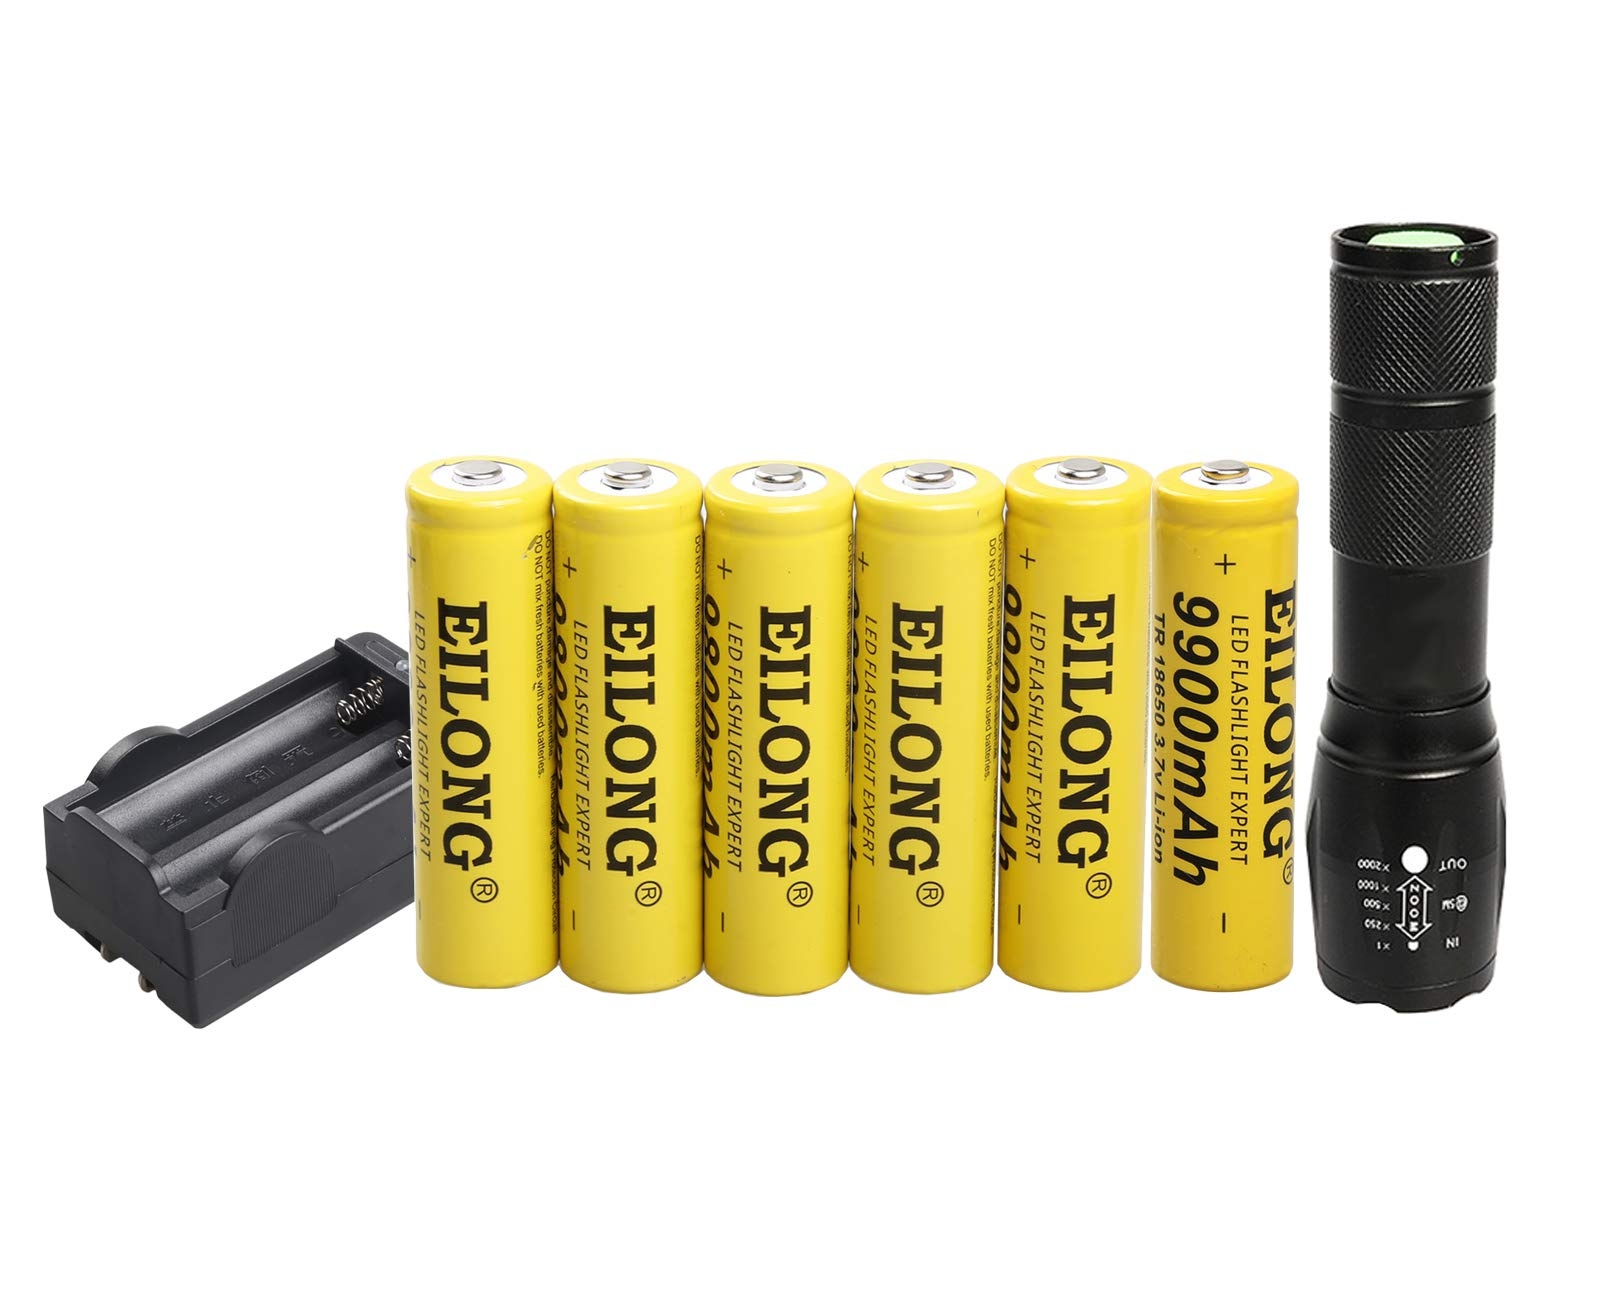 LED 1600 Lumen 18650 Flashlight with 6PCS 3.7V 9900mAh Rechargeable Battery and Charger,Ultra Bright Adjustable Focus and 5 Modes by MAXIAEON